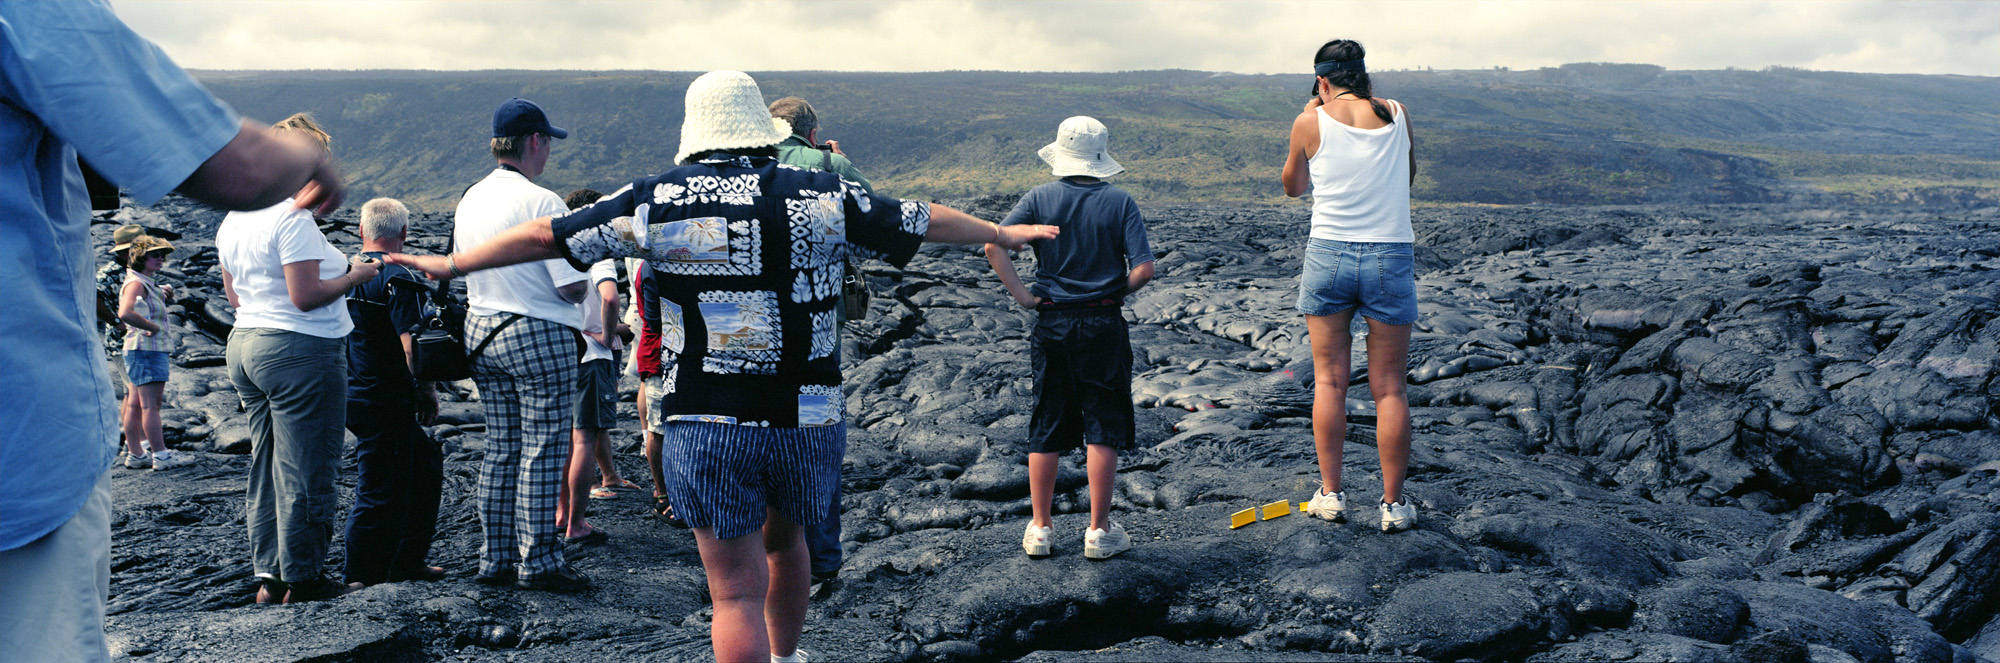 Close Enough, Volcano NP, Hawaii 2004